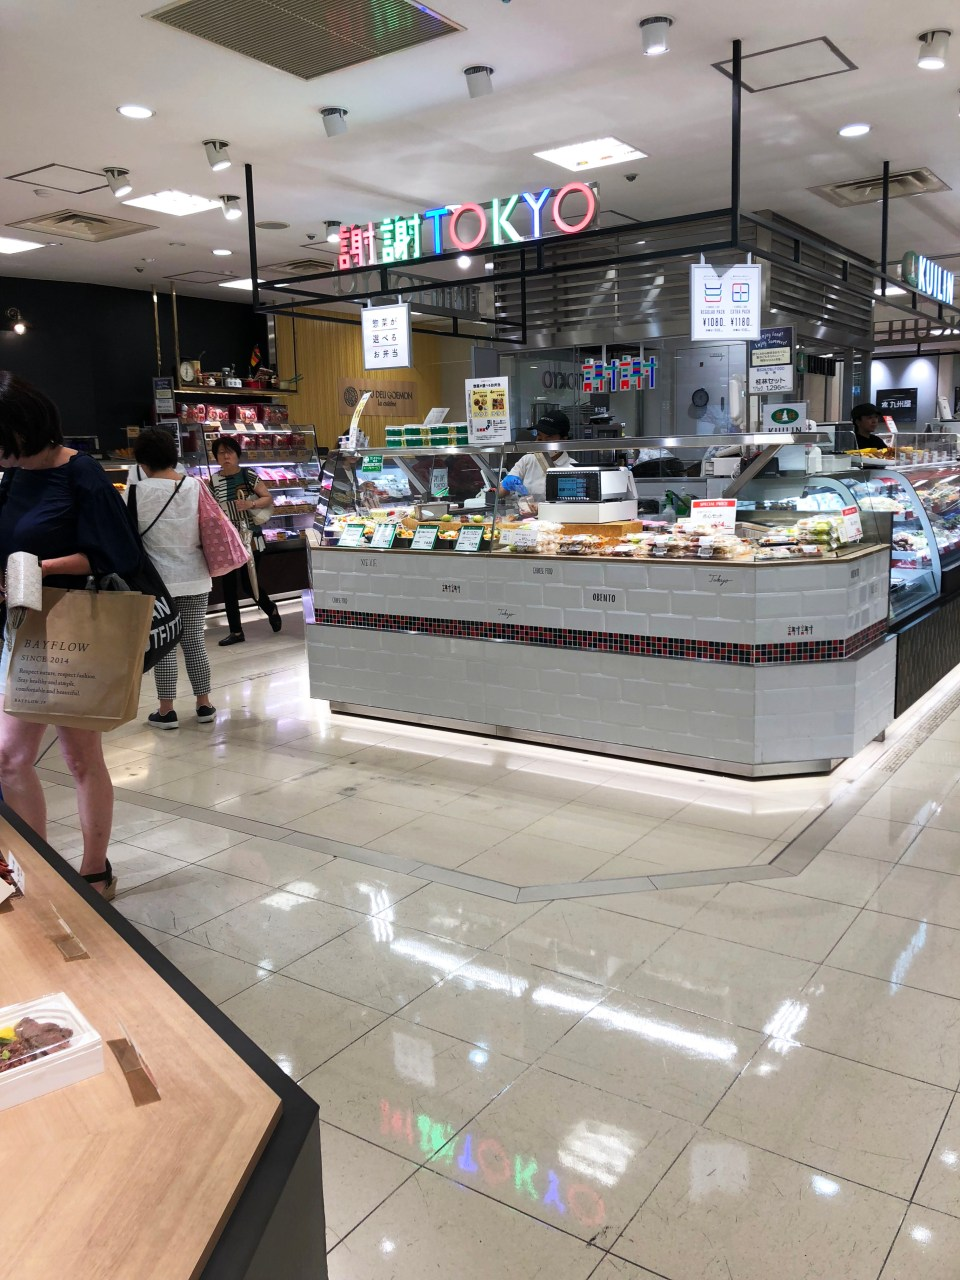 Odakyu - Food hall